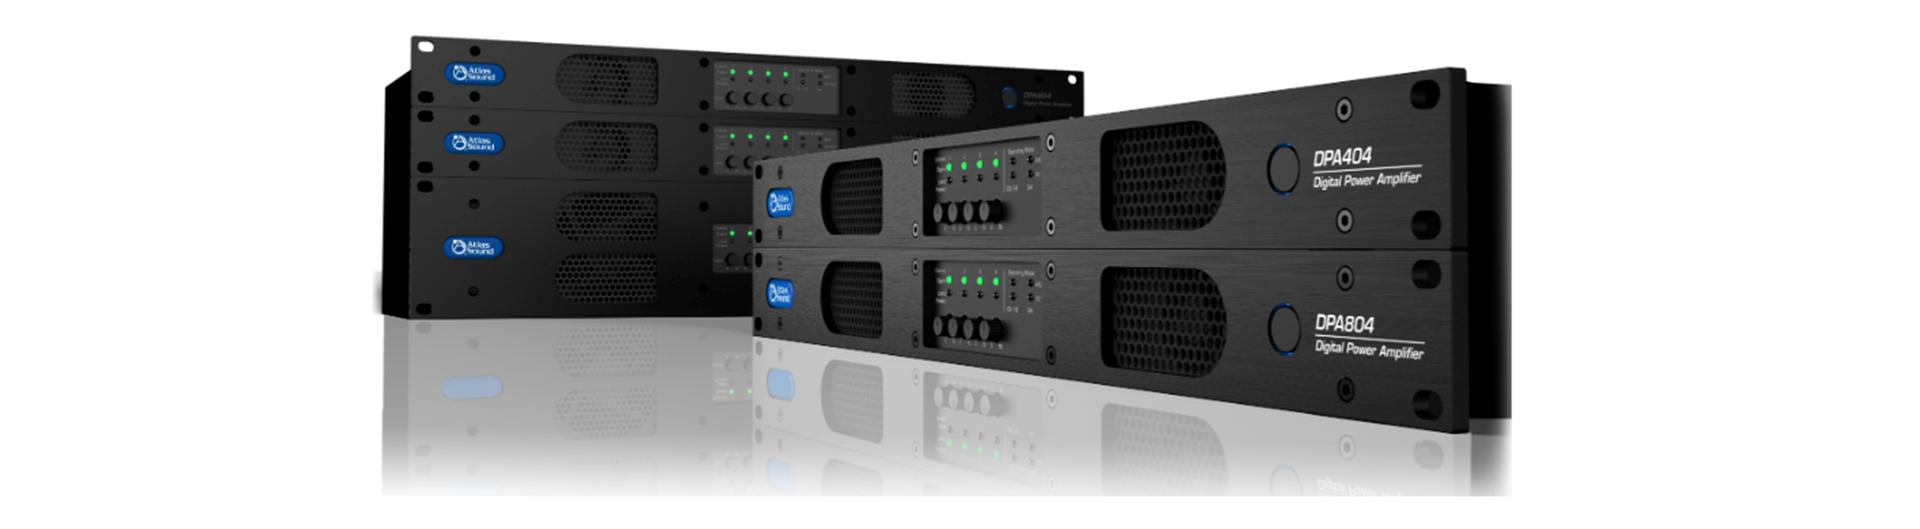 "AtlasIED Expands ""Installer's Dream"" Series of Amplifiers"